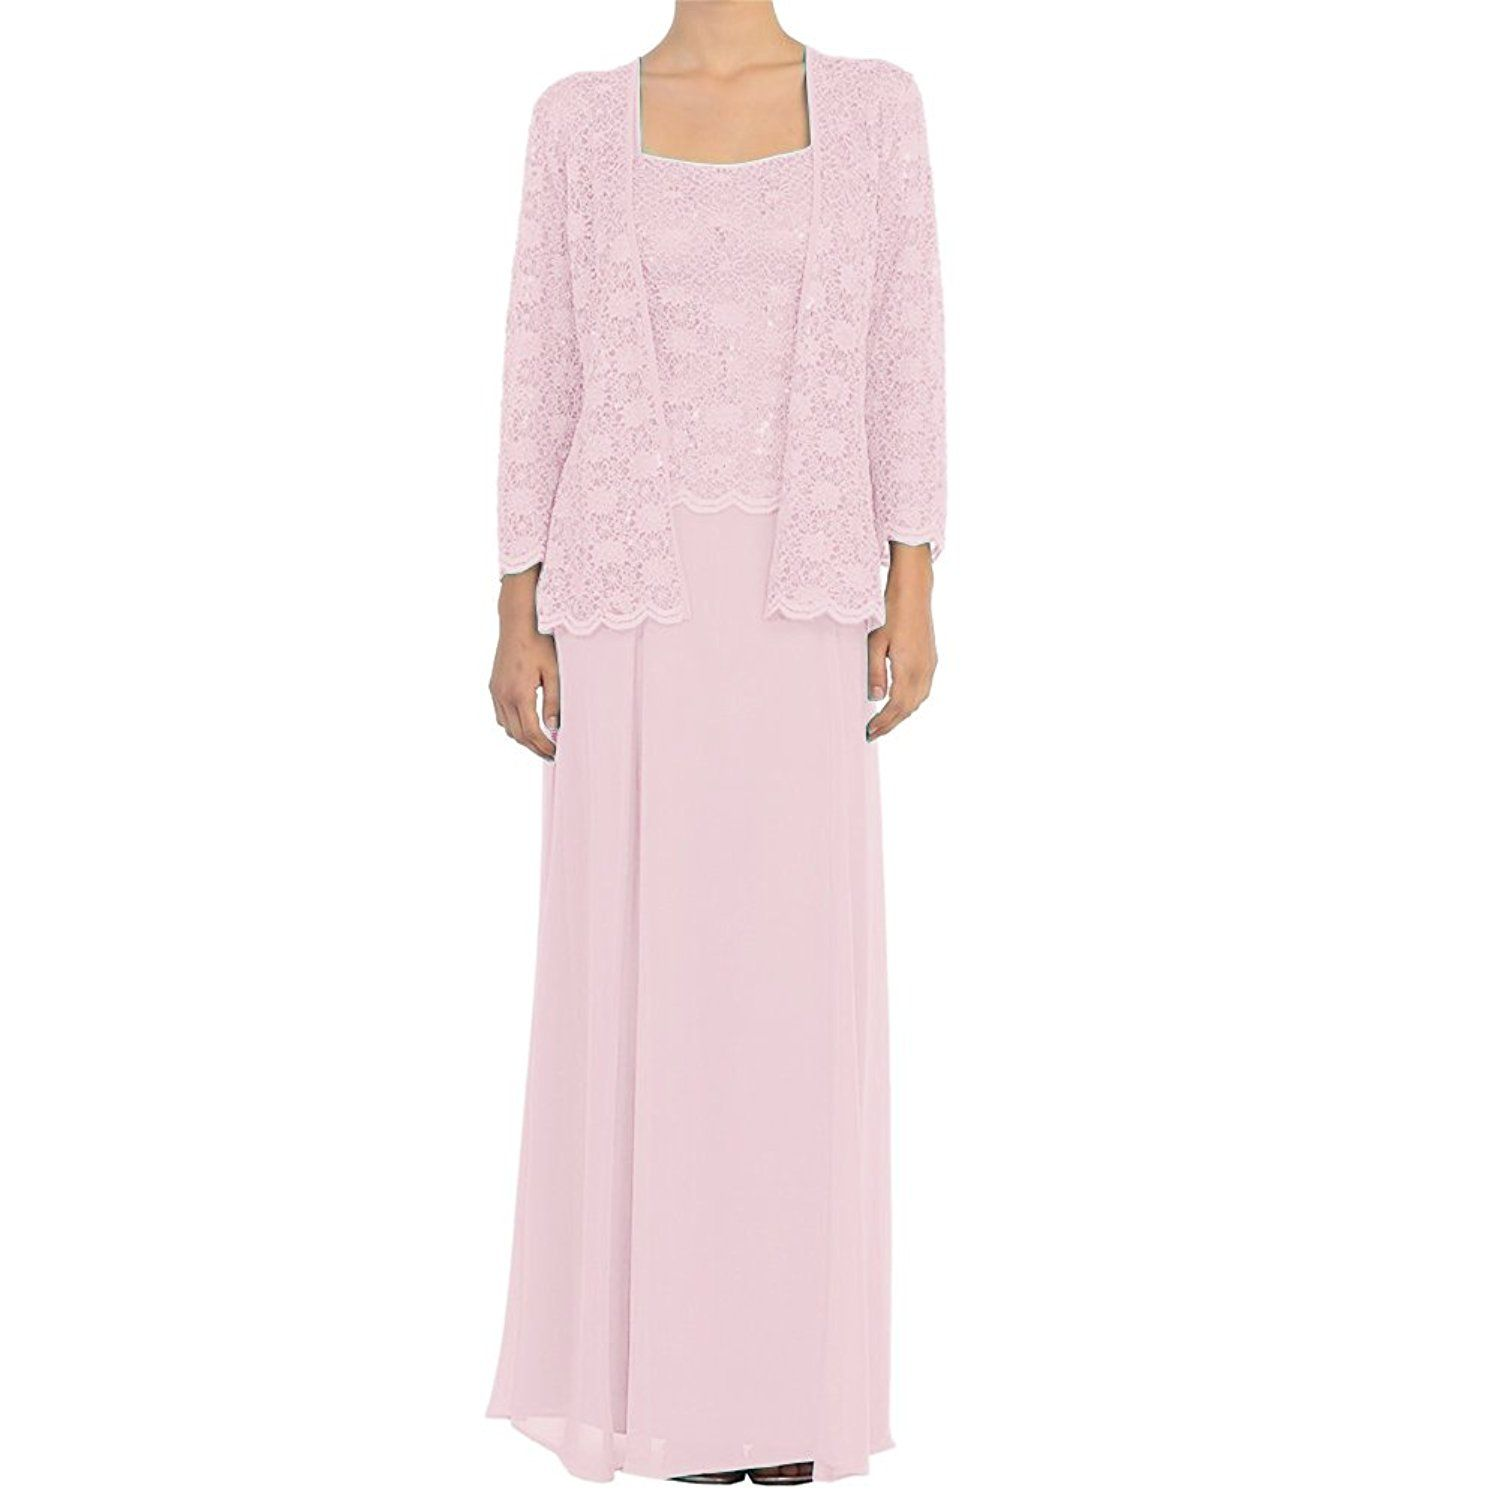 97f8e43c37c H.S.D Mother of the Bride Dress Chiffon Long Formal Gowns with Jacket Light  Pink at Amazon